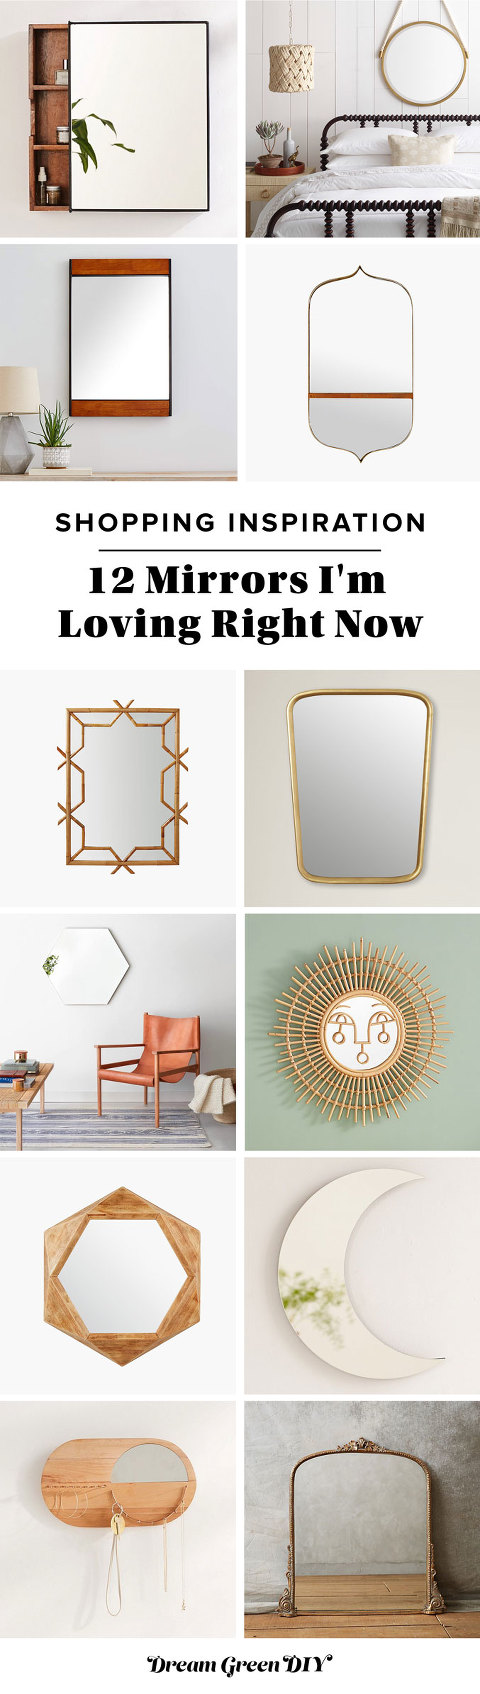 12 Mirrors I'm Loving Right Now